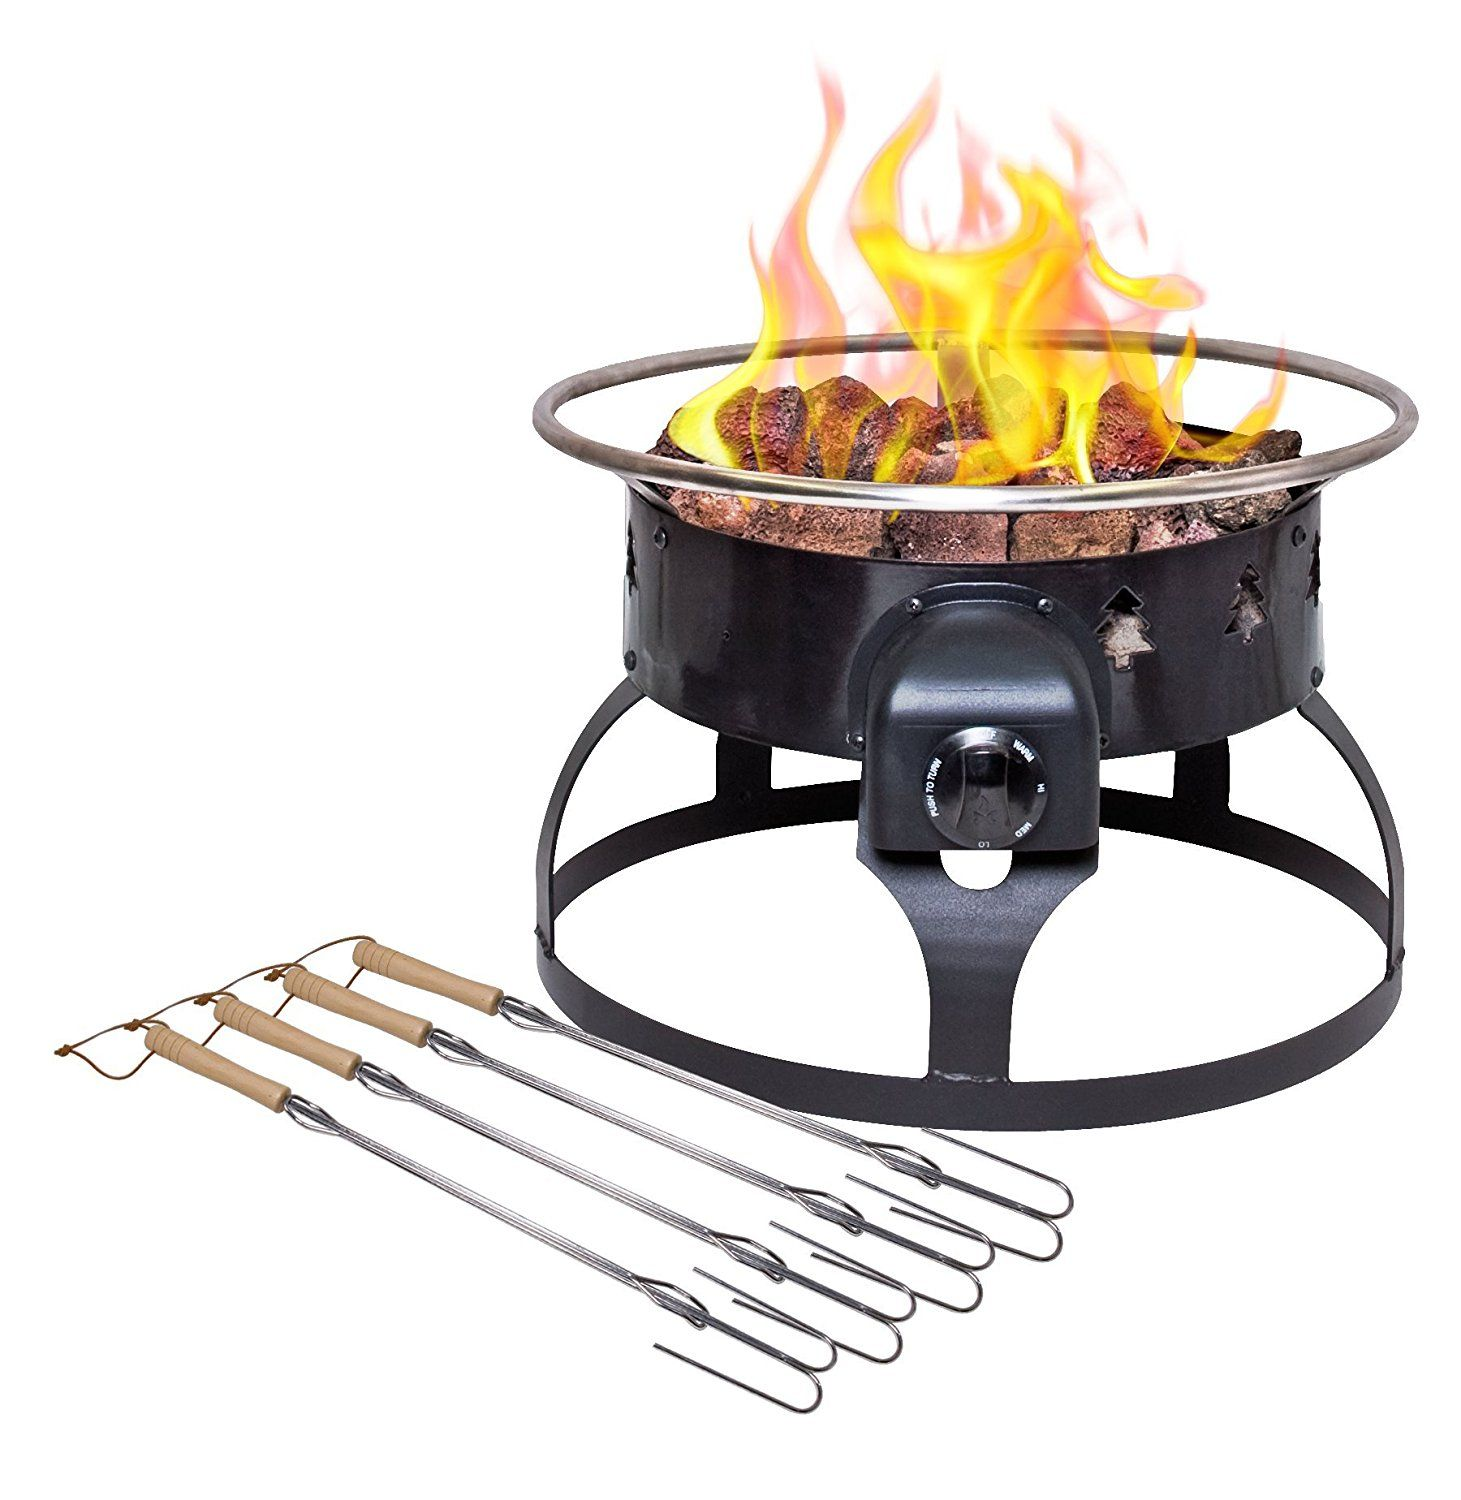 Top 7 Best Portable Fire Pits In 2017